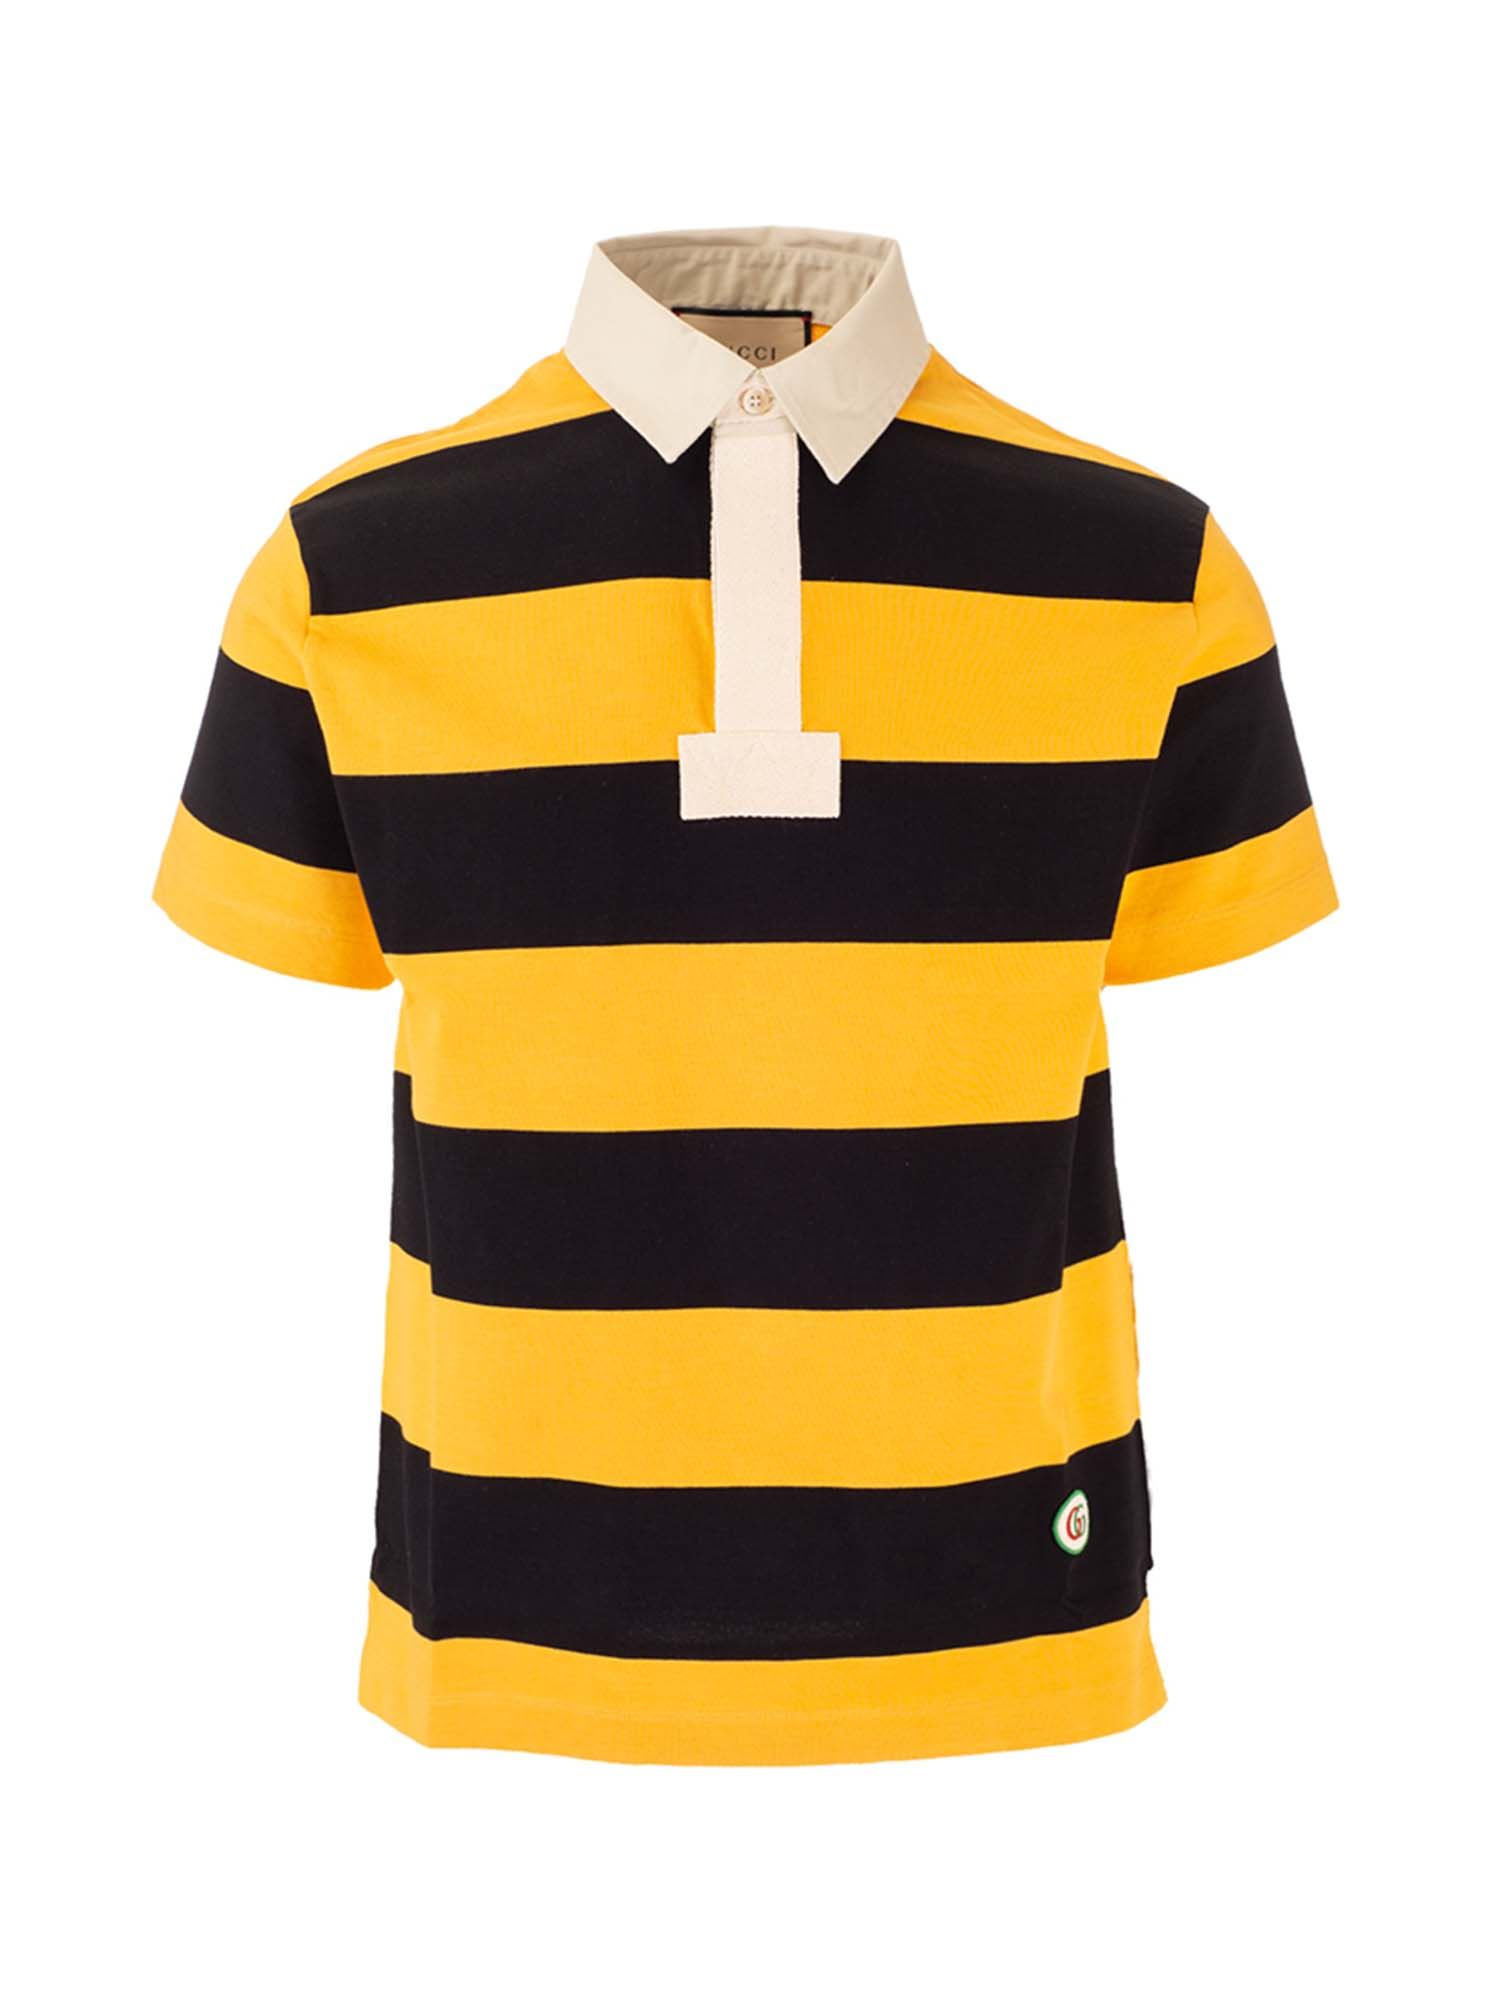 Gucci STRIPED POLO SHIRT IN YELLOW AND BLACK